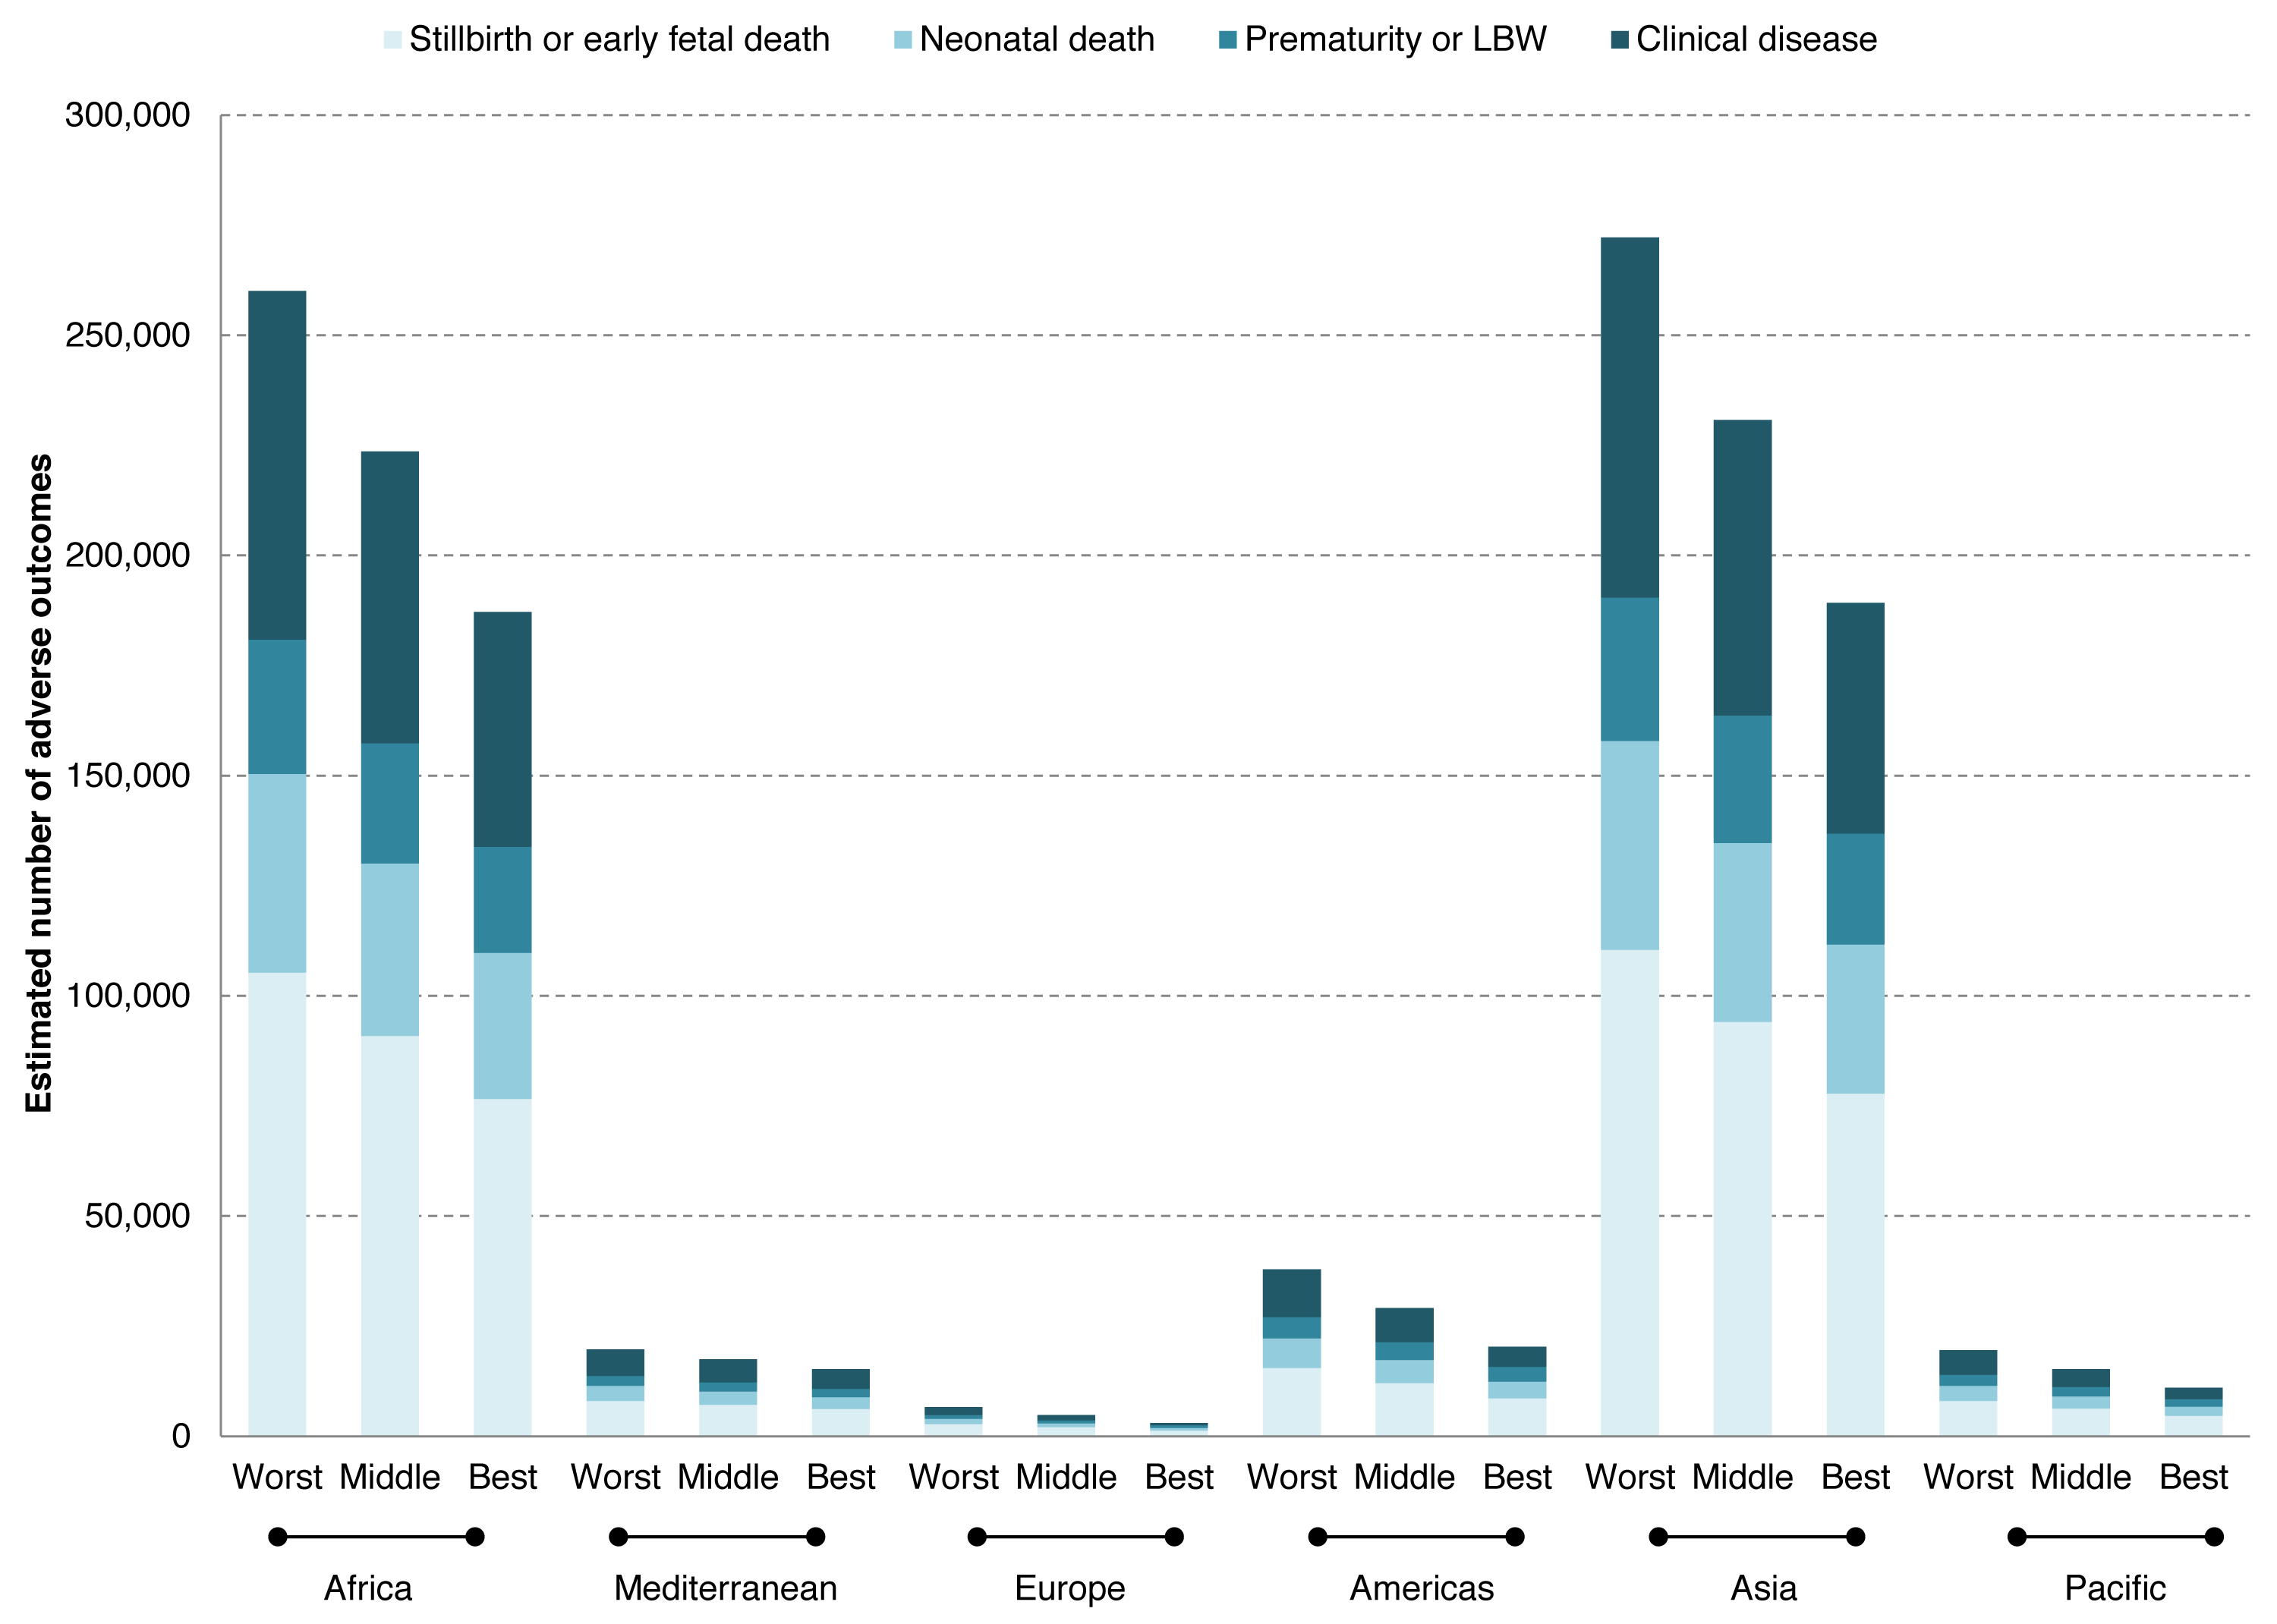 Estimated number of adverse outcomes associated with syphilis in pregnancy in a worst, middle, and best case scenarios of testing and treatment in 2008.